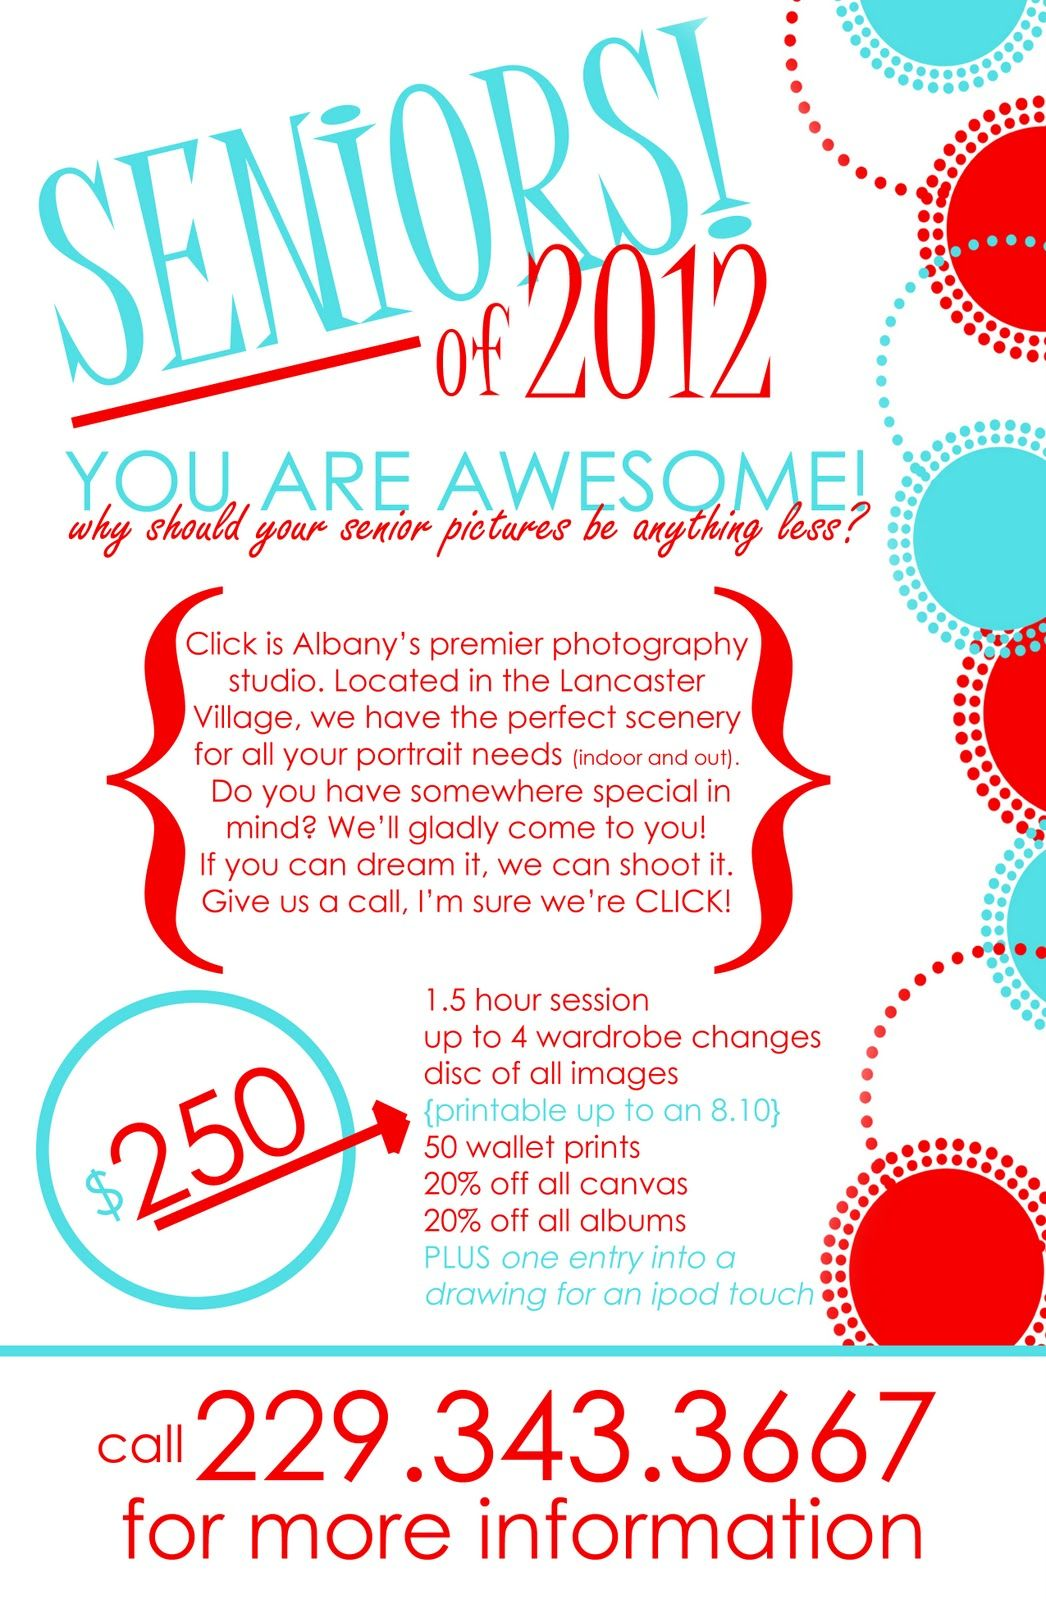 12 best photographer flyer ideas images on Pinterest ... |Photography Business Flyer Ideas